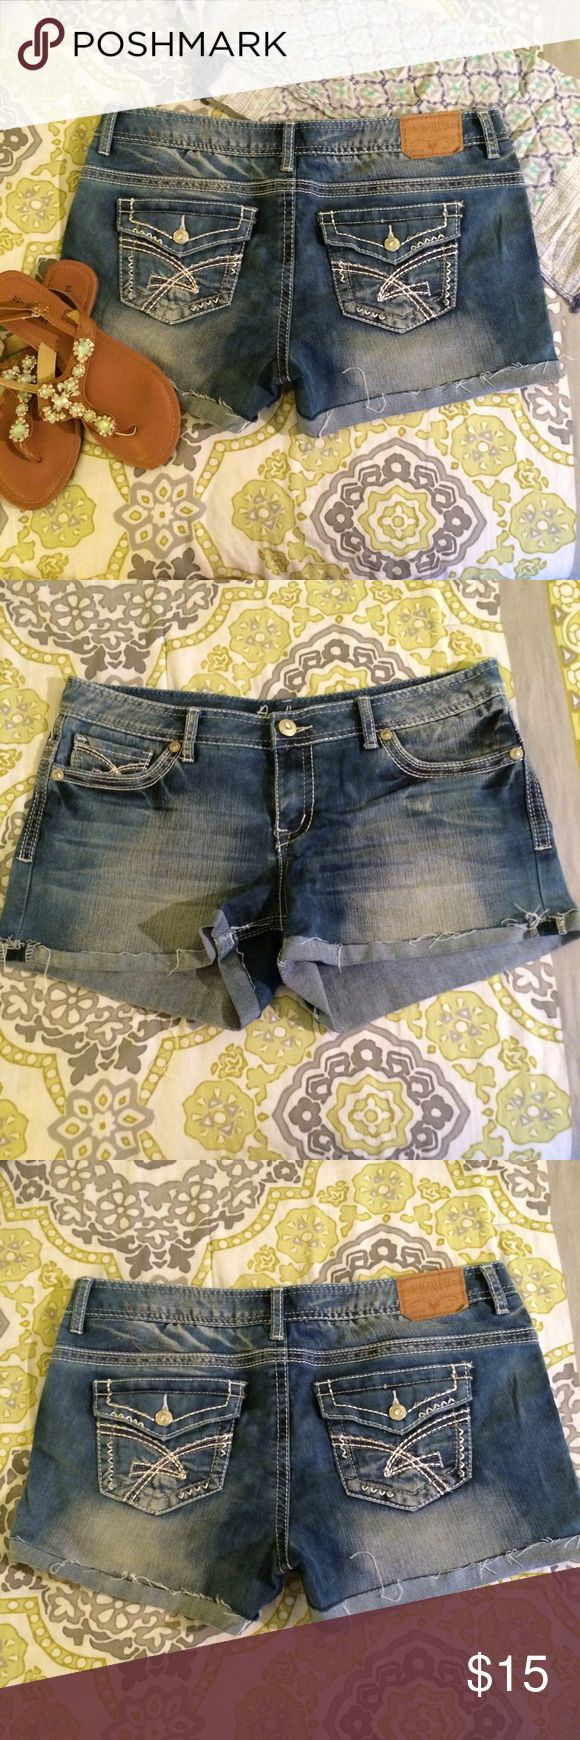 Cuffed Jean Shorts Faded jean shorts with real front and back pockets. Amethyst Shorts Jean Shorts